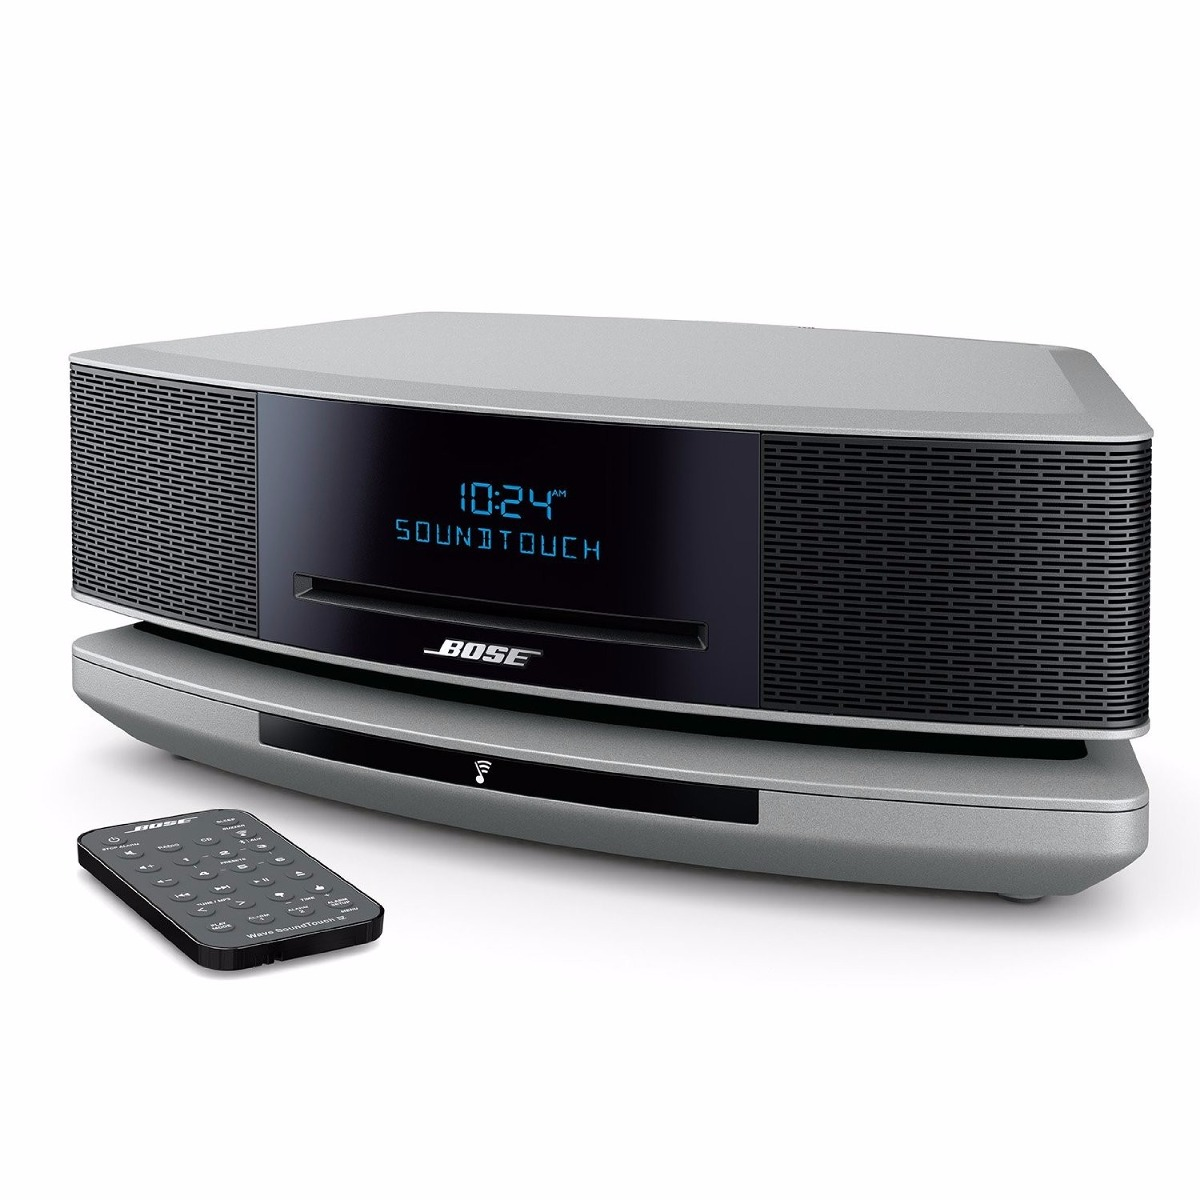 wave soundtouch music system iv manual